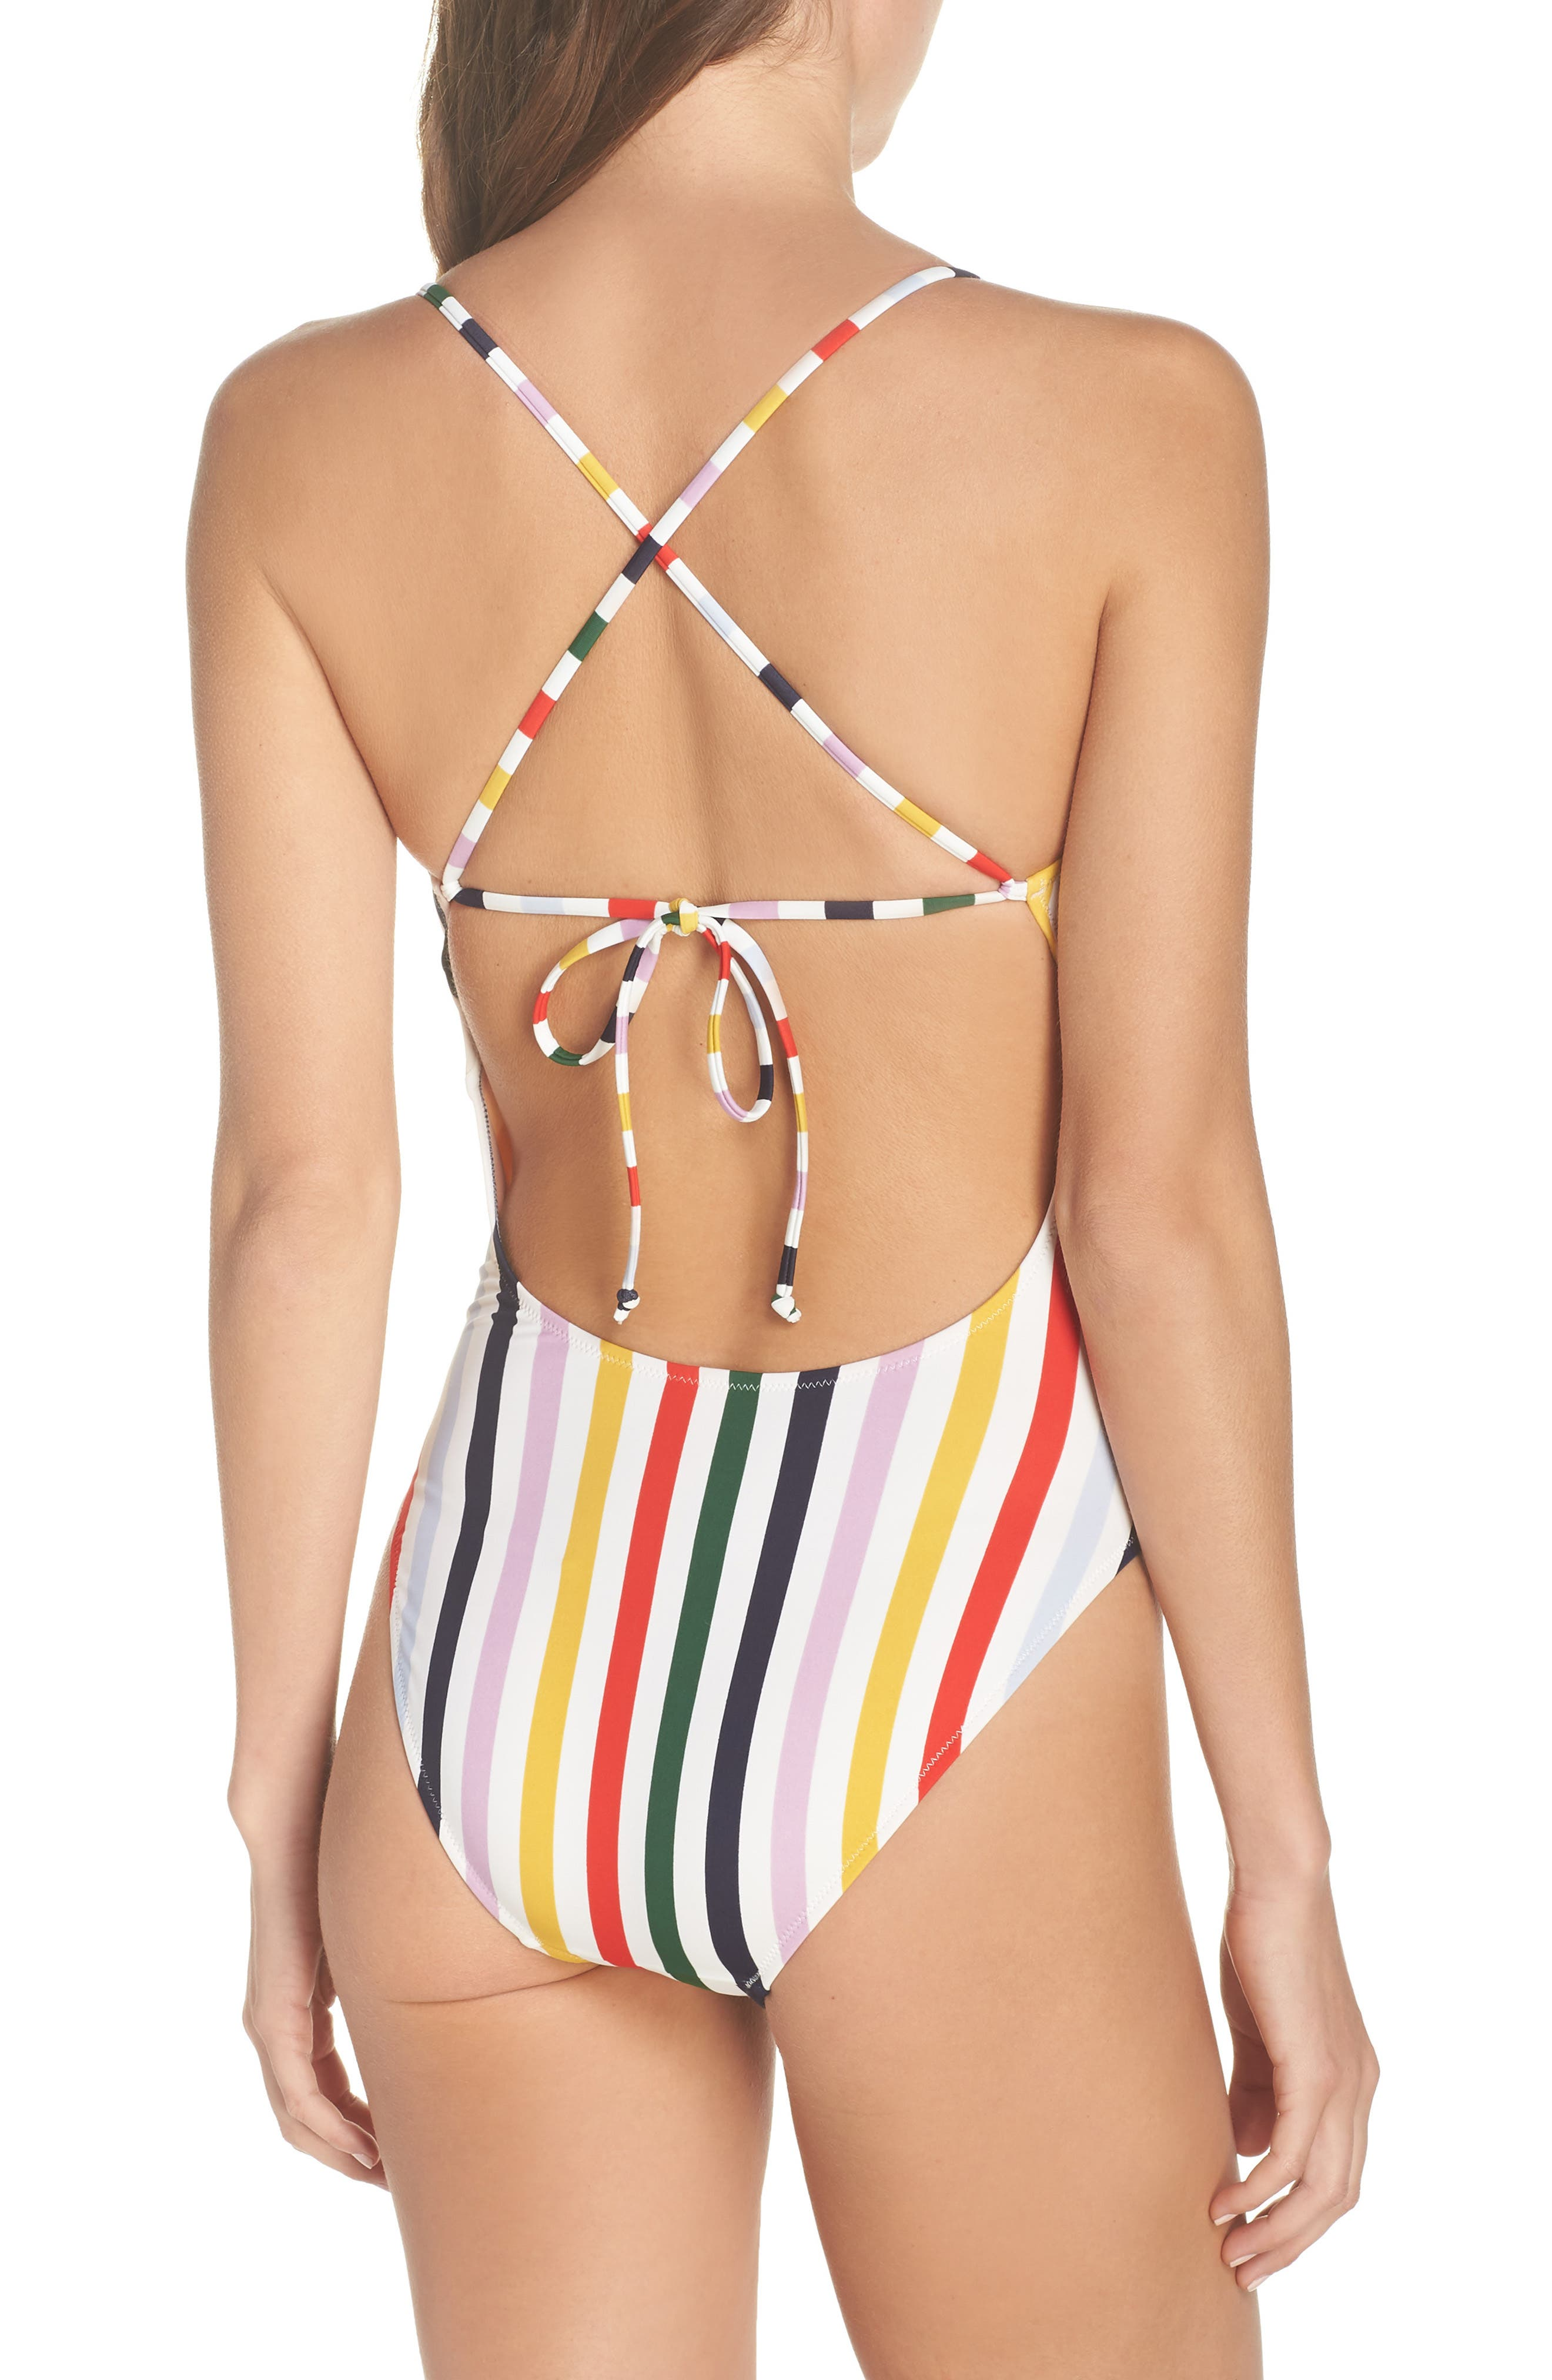 J.CREW,                             Holiday Stripe Tie Back One-Piece Swimsuit,                             Alternate thumbnail 2, color,                             IVORY RICH GOLD MULTI